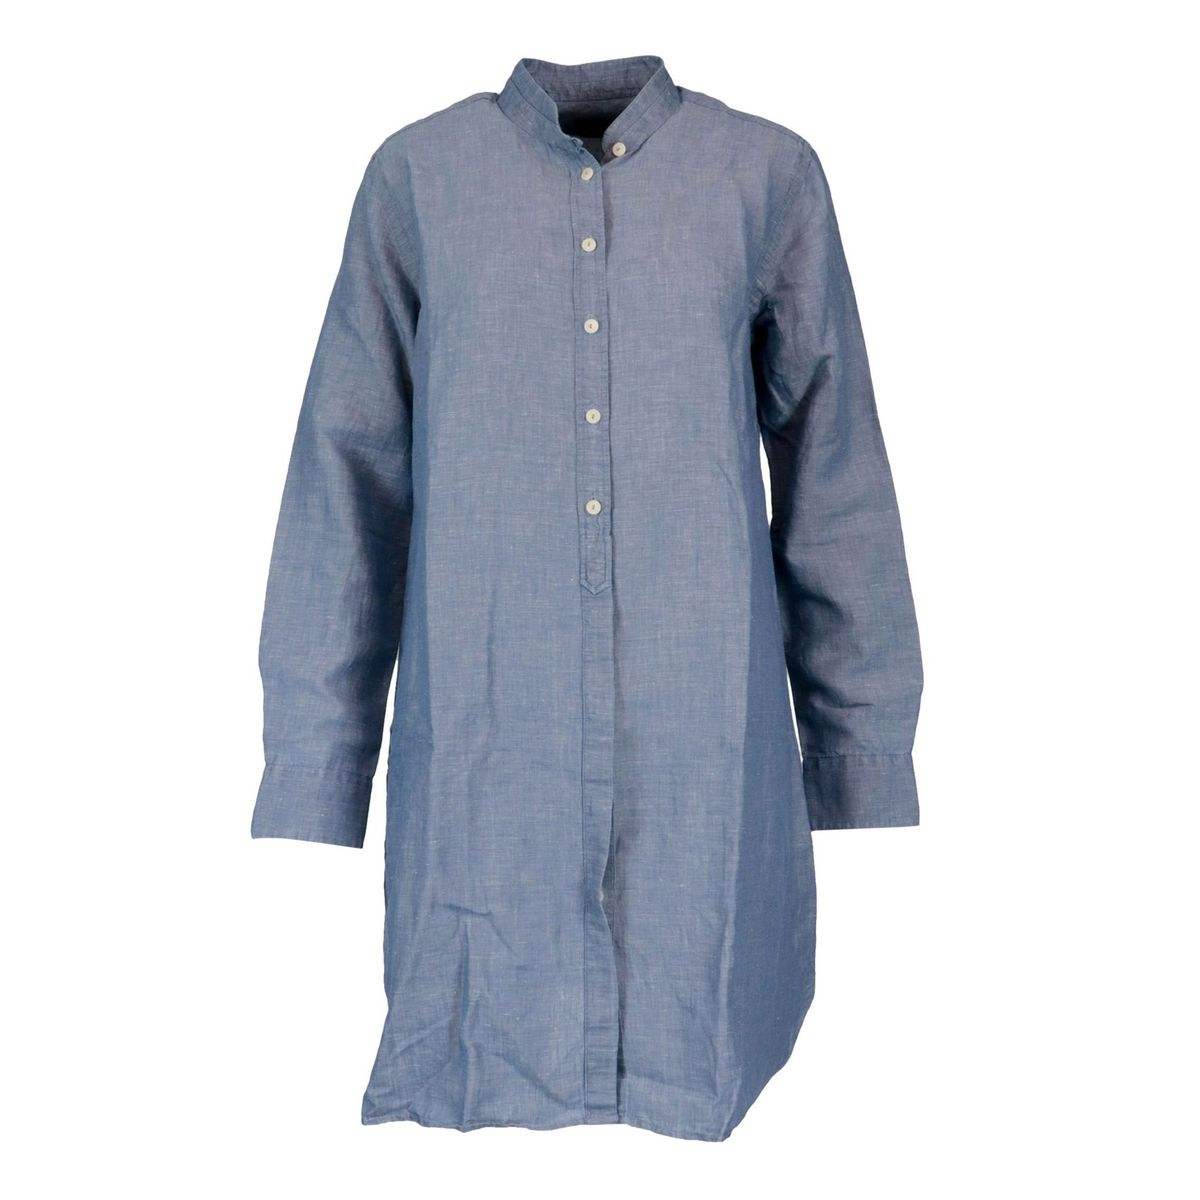 Clemance linen blend shirt dress Denim MC2 Saint Barth